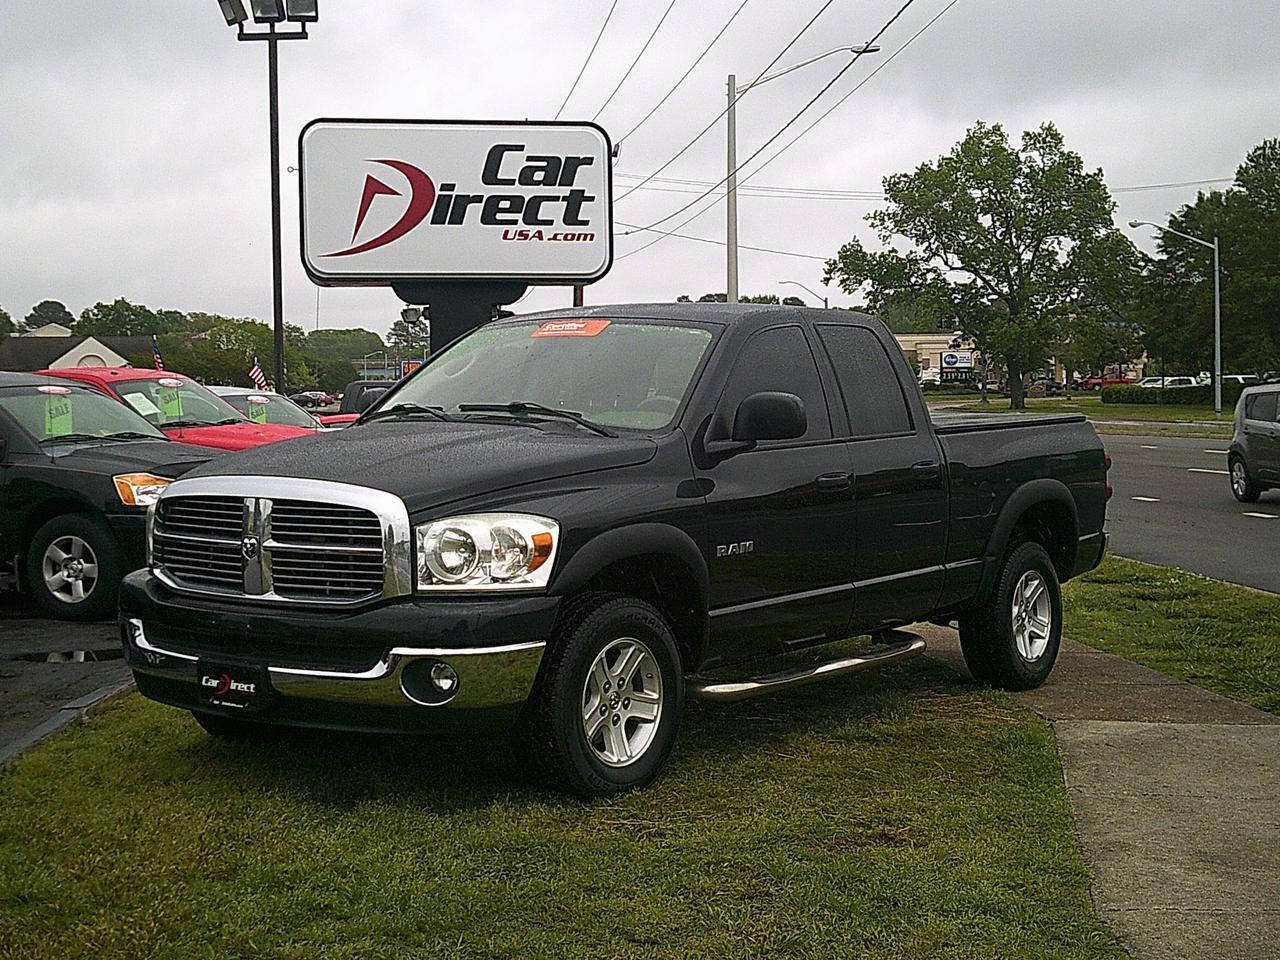 2008 dodge ram 1500 slt 4x4 big horn quad cab autocheck certified soft tonneau cover running. Black Bedroom Furniture Sets. Home Design Ideas